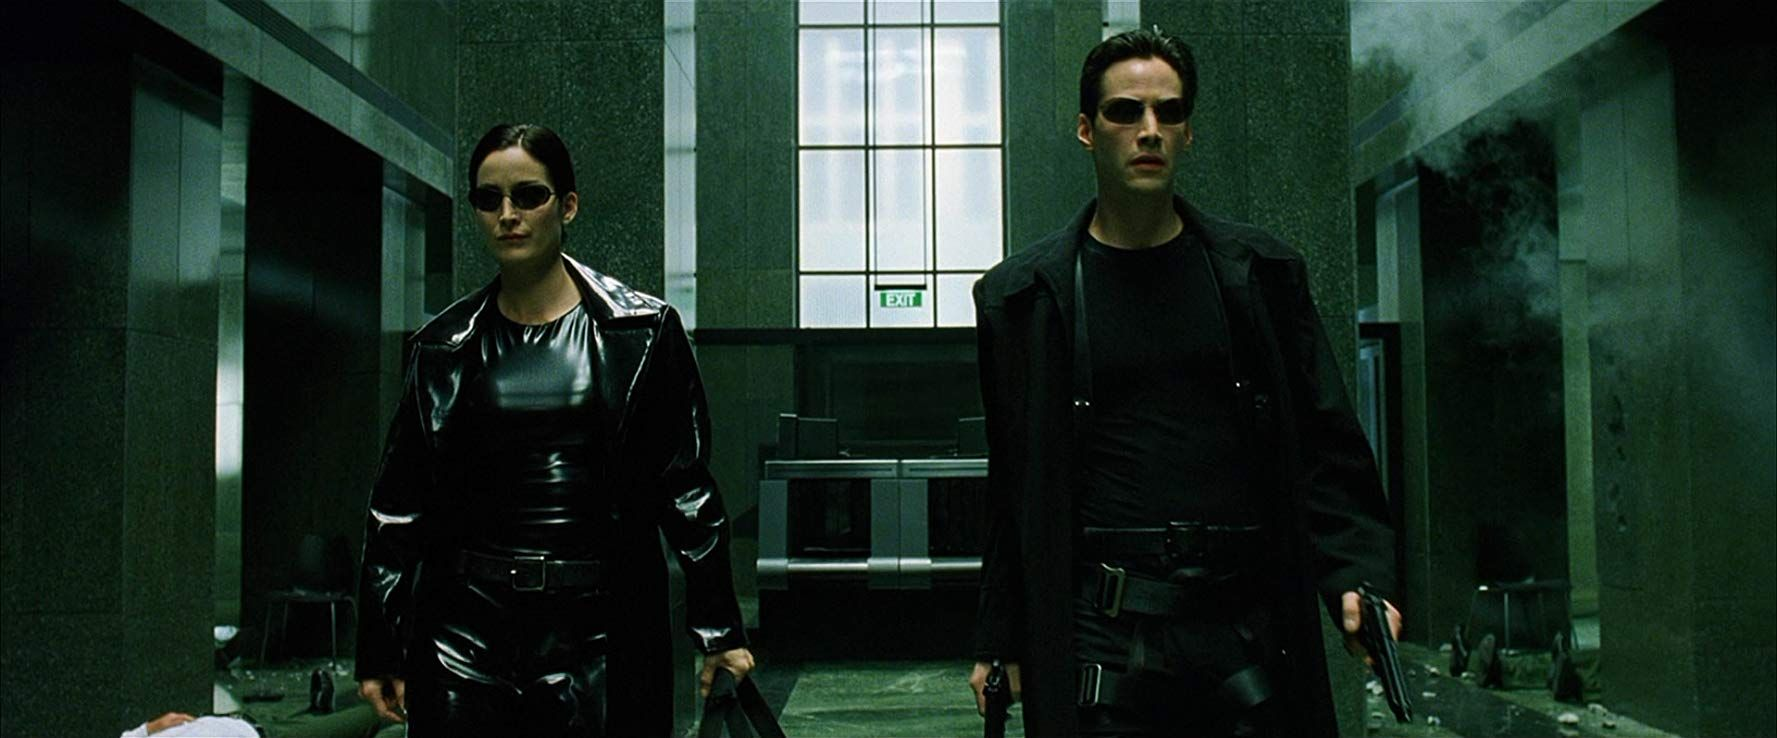 Watch Keanu Reeves's All Best Movies- Matrix in Chronological Order